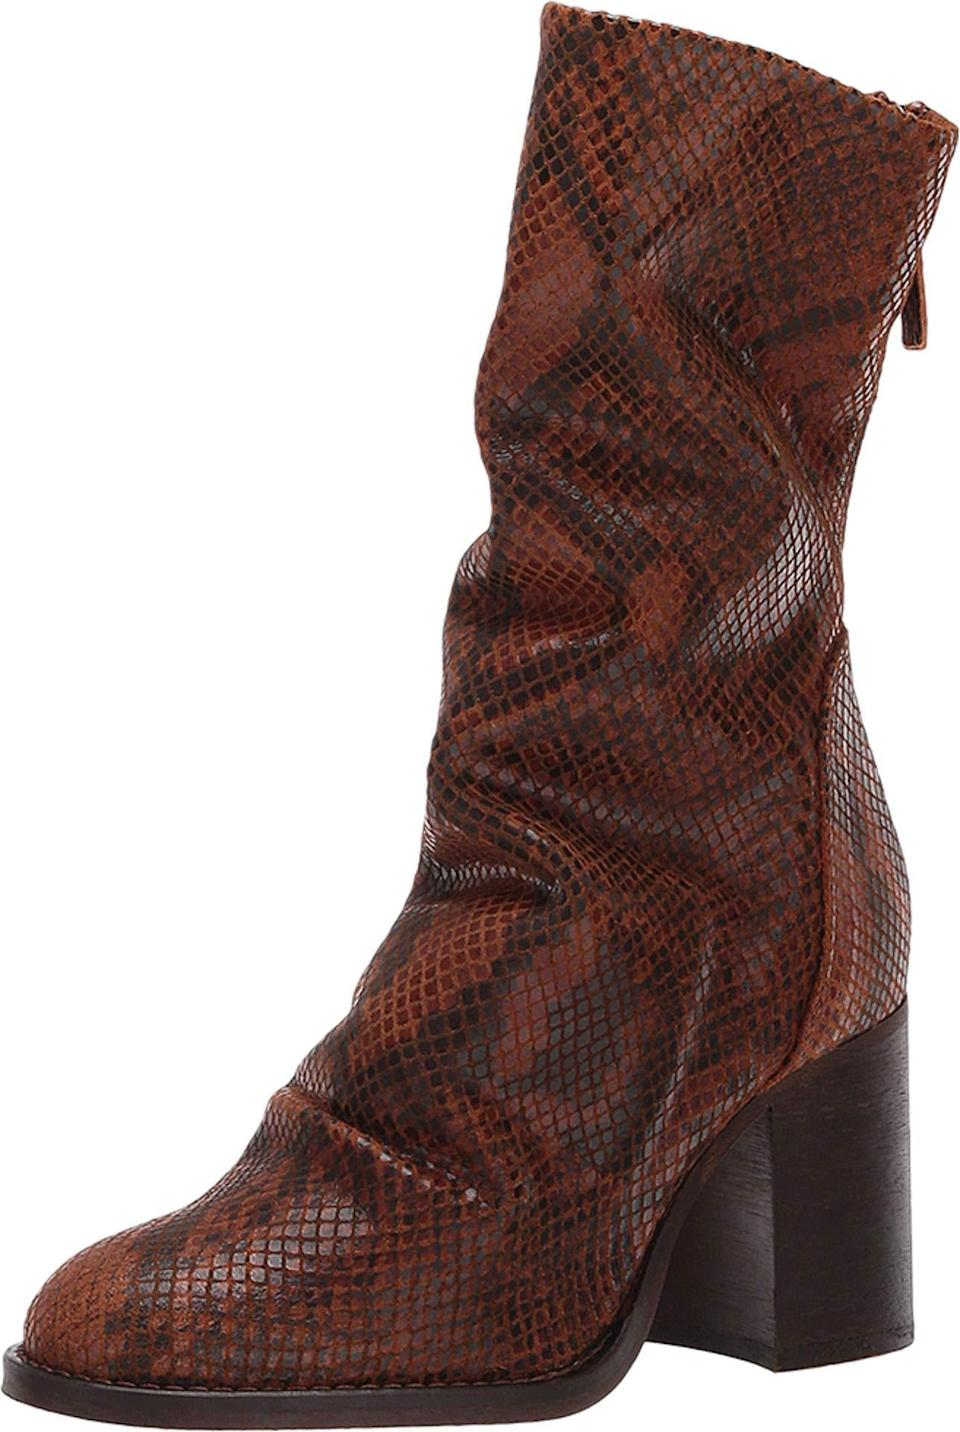 "<br><br><strong>Free People</strong> Elle Block Heel Booties, $, available at <a href=""https://amzn.to/3j5c4Na"" rel=""nofollow noopener"" target=""_blank"" data-ylk=""slk:Amazon Fashion"" class=""link rapid-noclick-resp"">Amazon Fashion</a>"